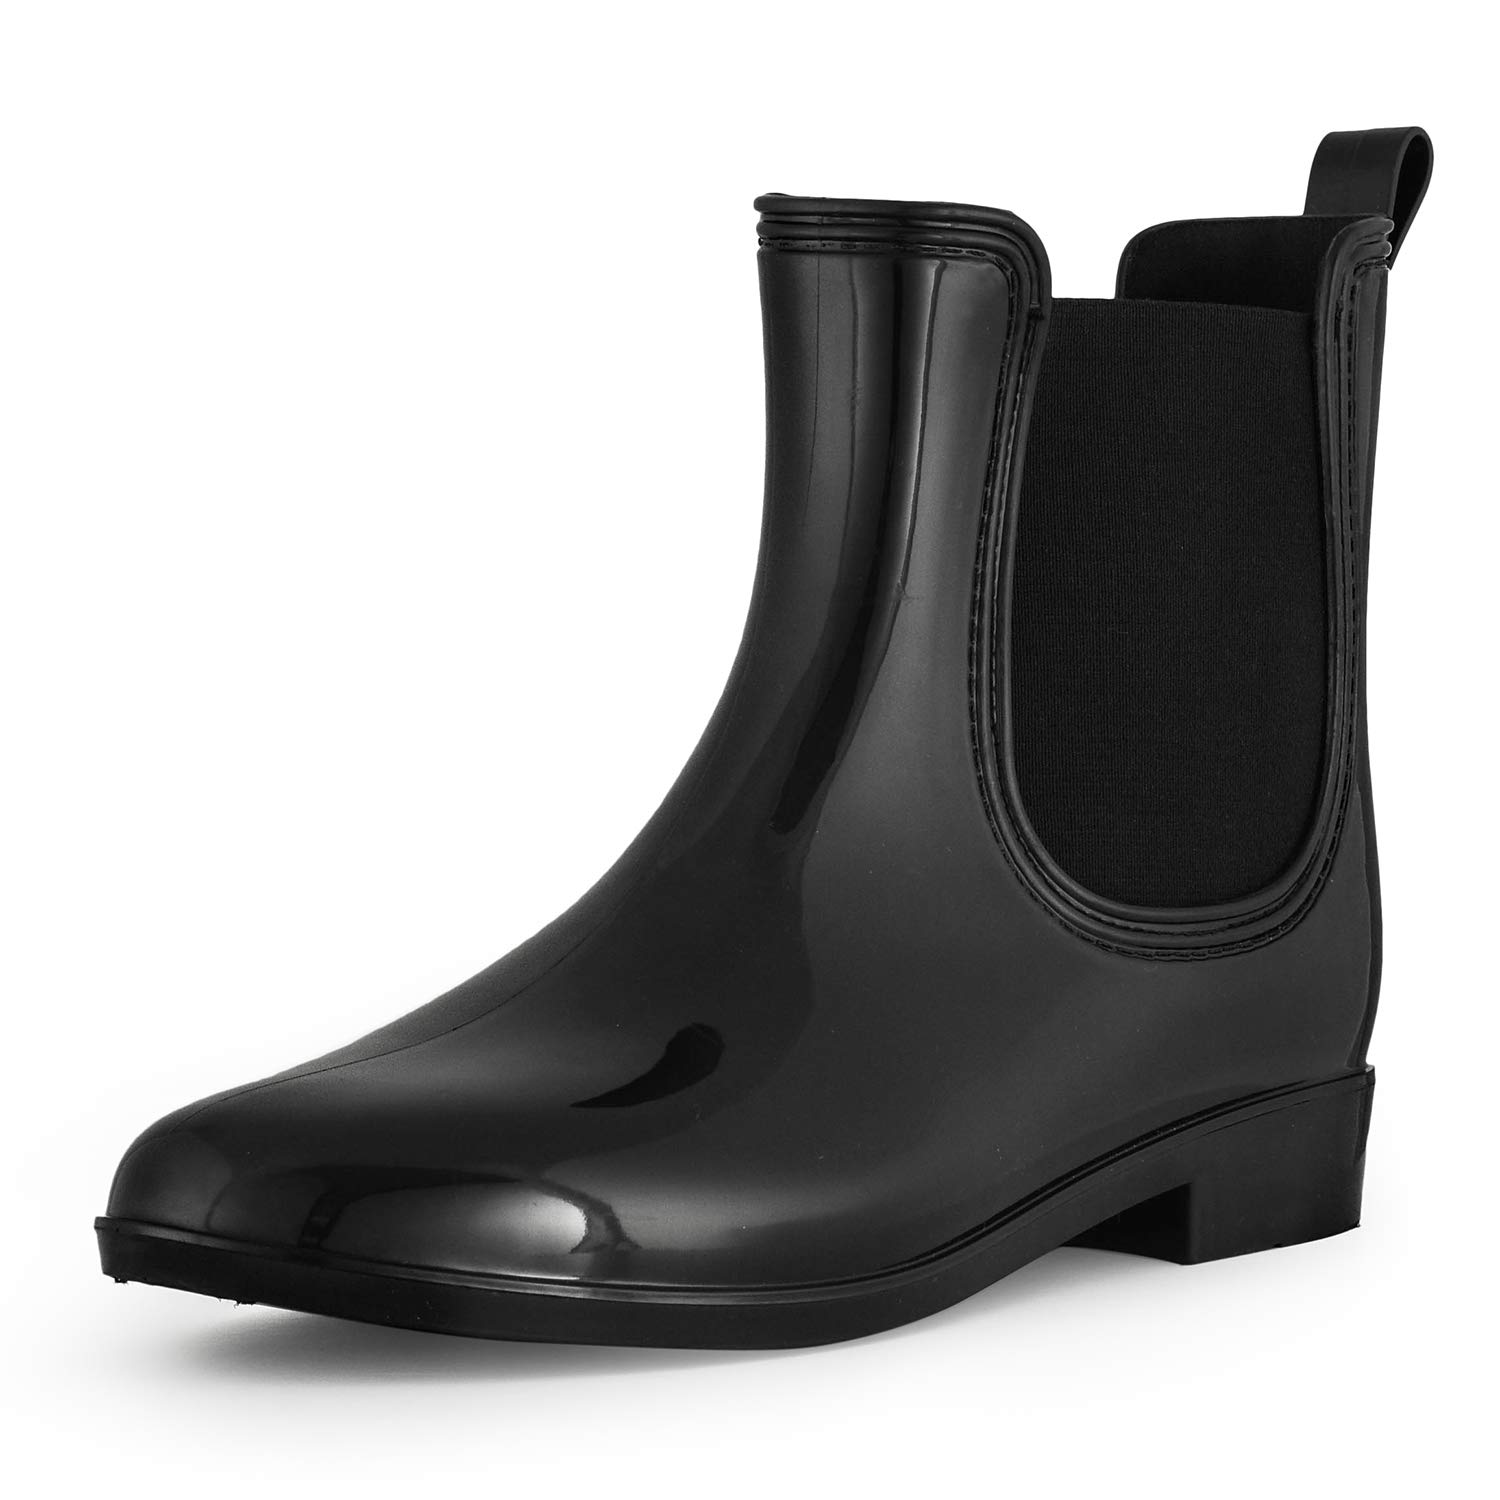 SheSole Ankle Short Rain Boots for Women Waterproof Chelsea Boots